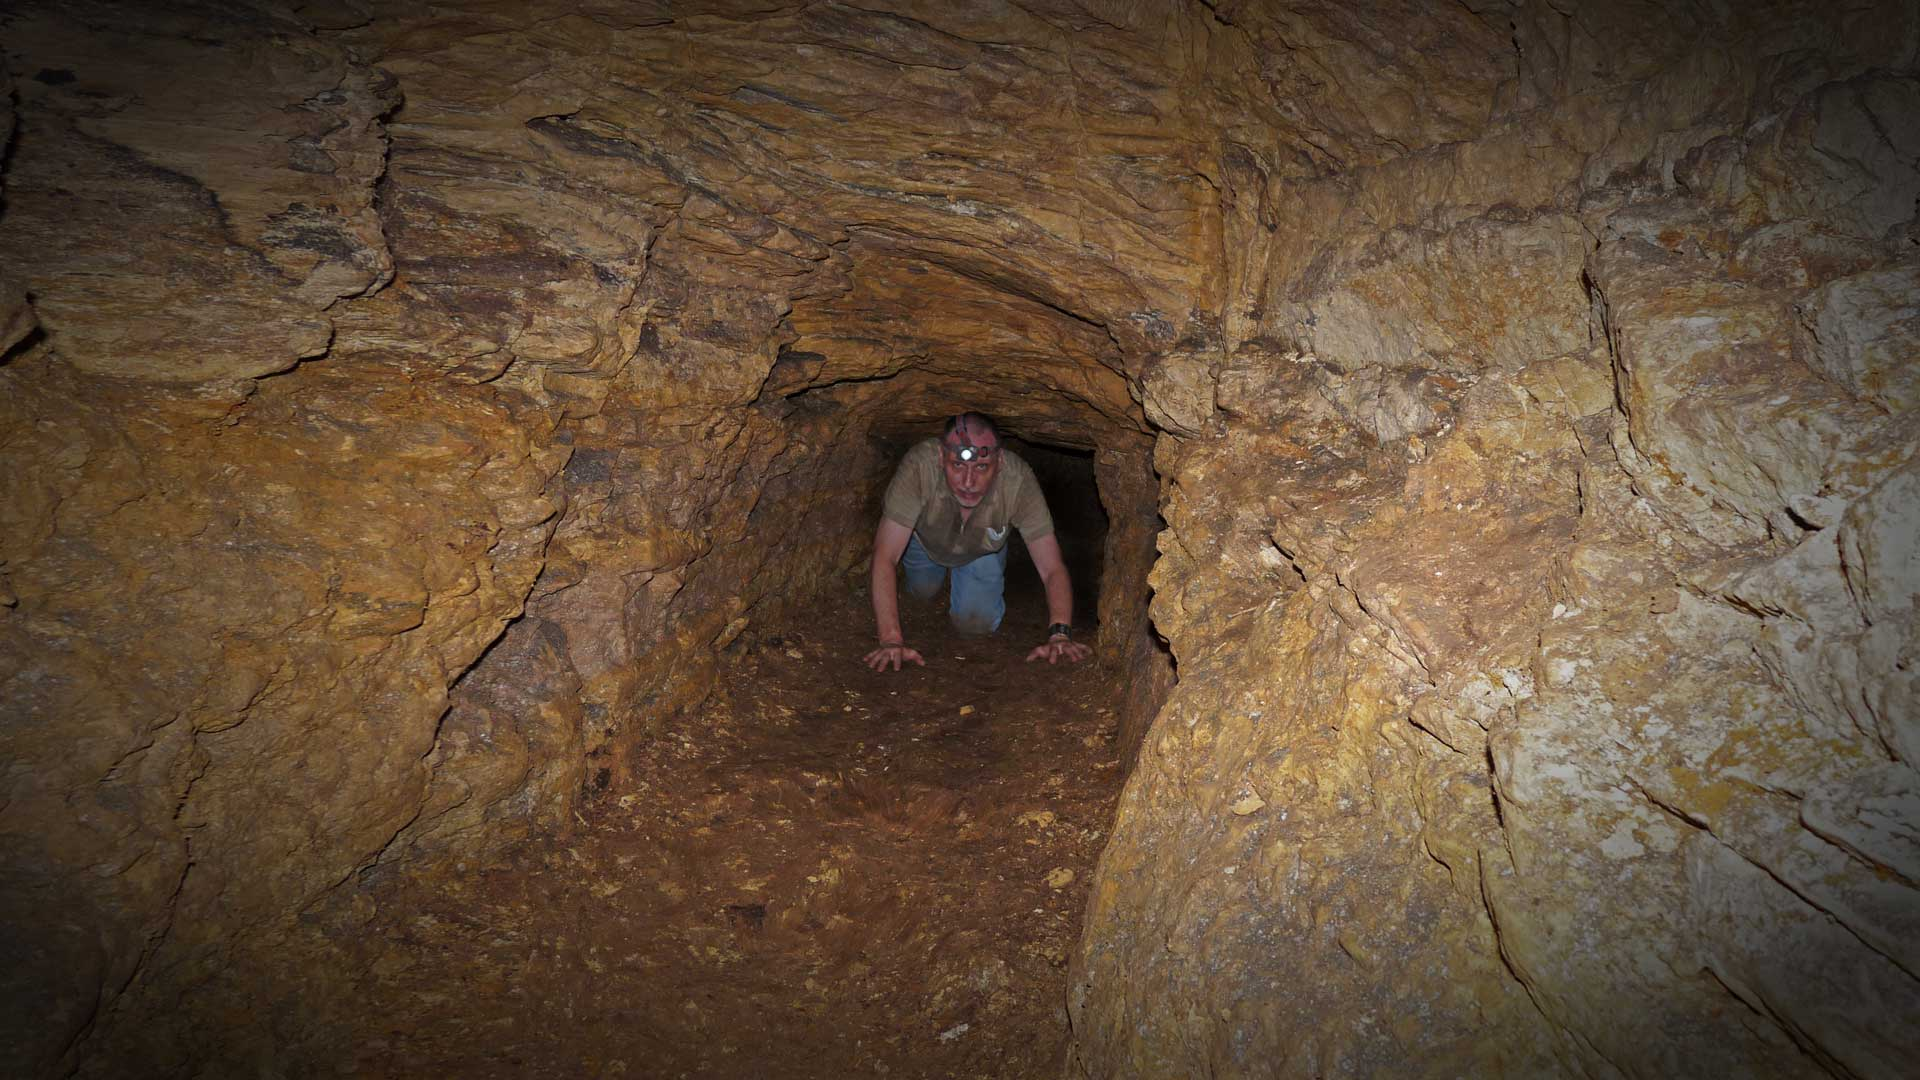 Osiris tomb (shaft) in Giza: Gregor Spörri explores the mysterious passage on the east side of level / chamber three.